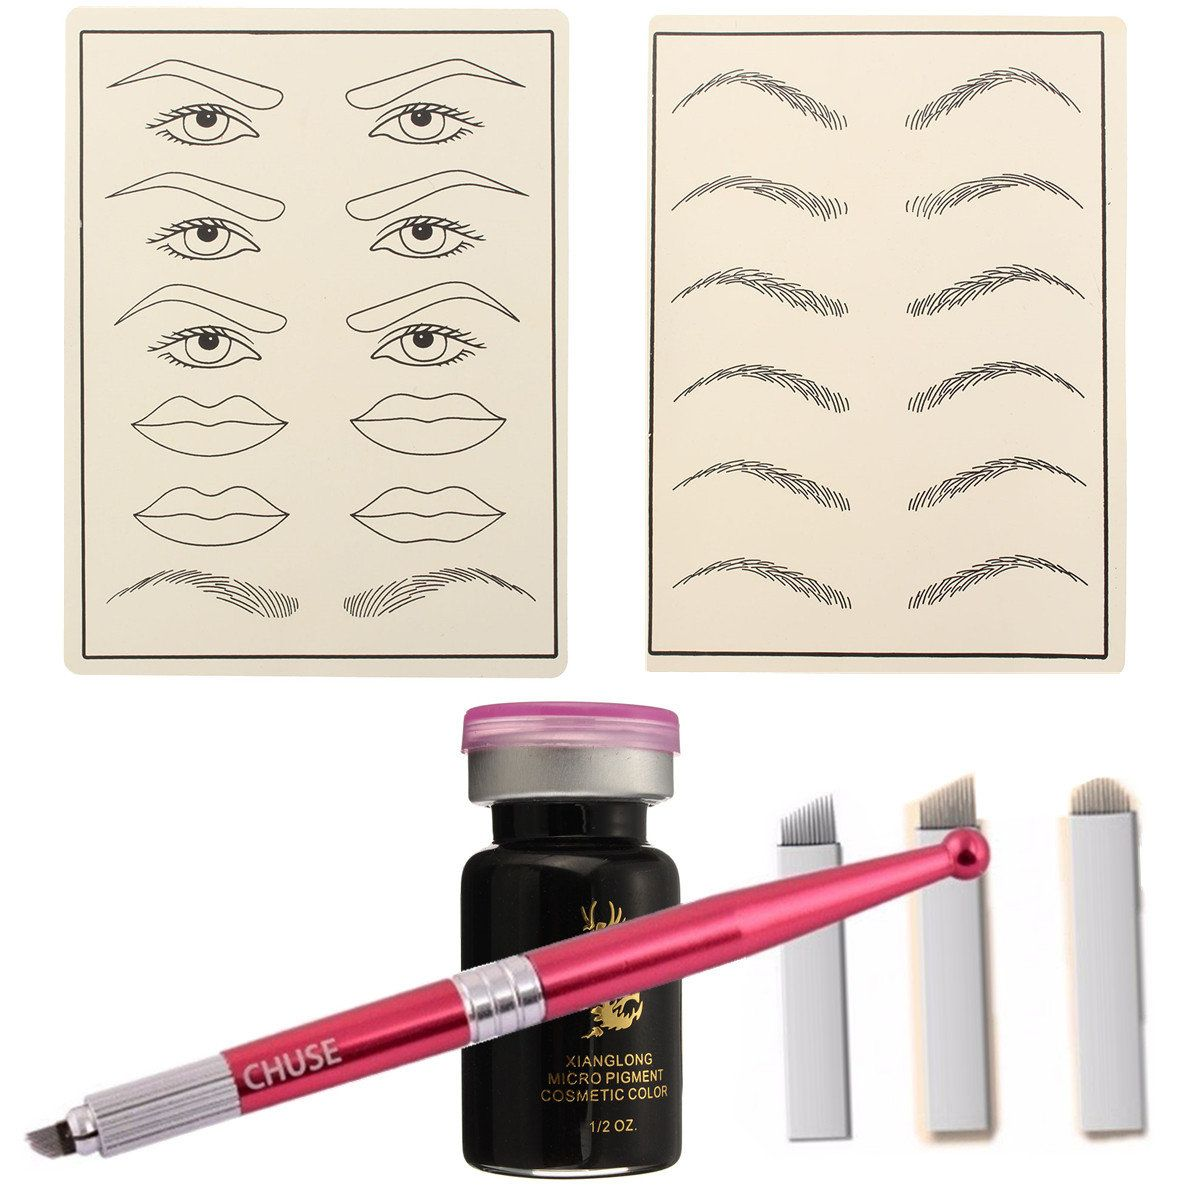 Makeup Tattoo Kit Permanent Eyebrow Pen Practice Tattoos